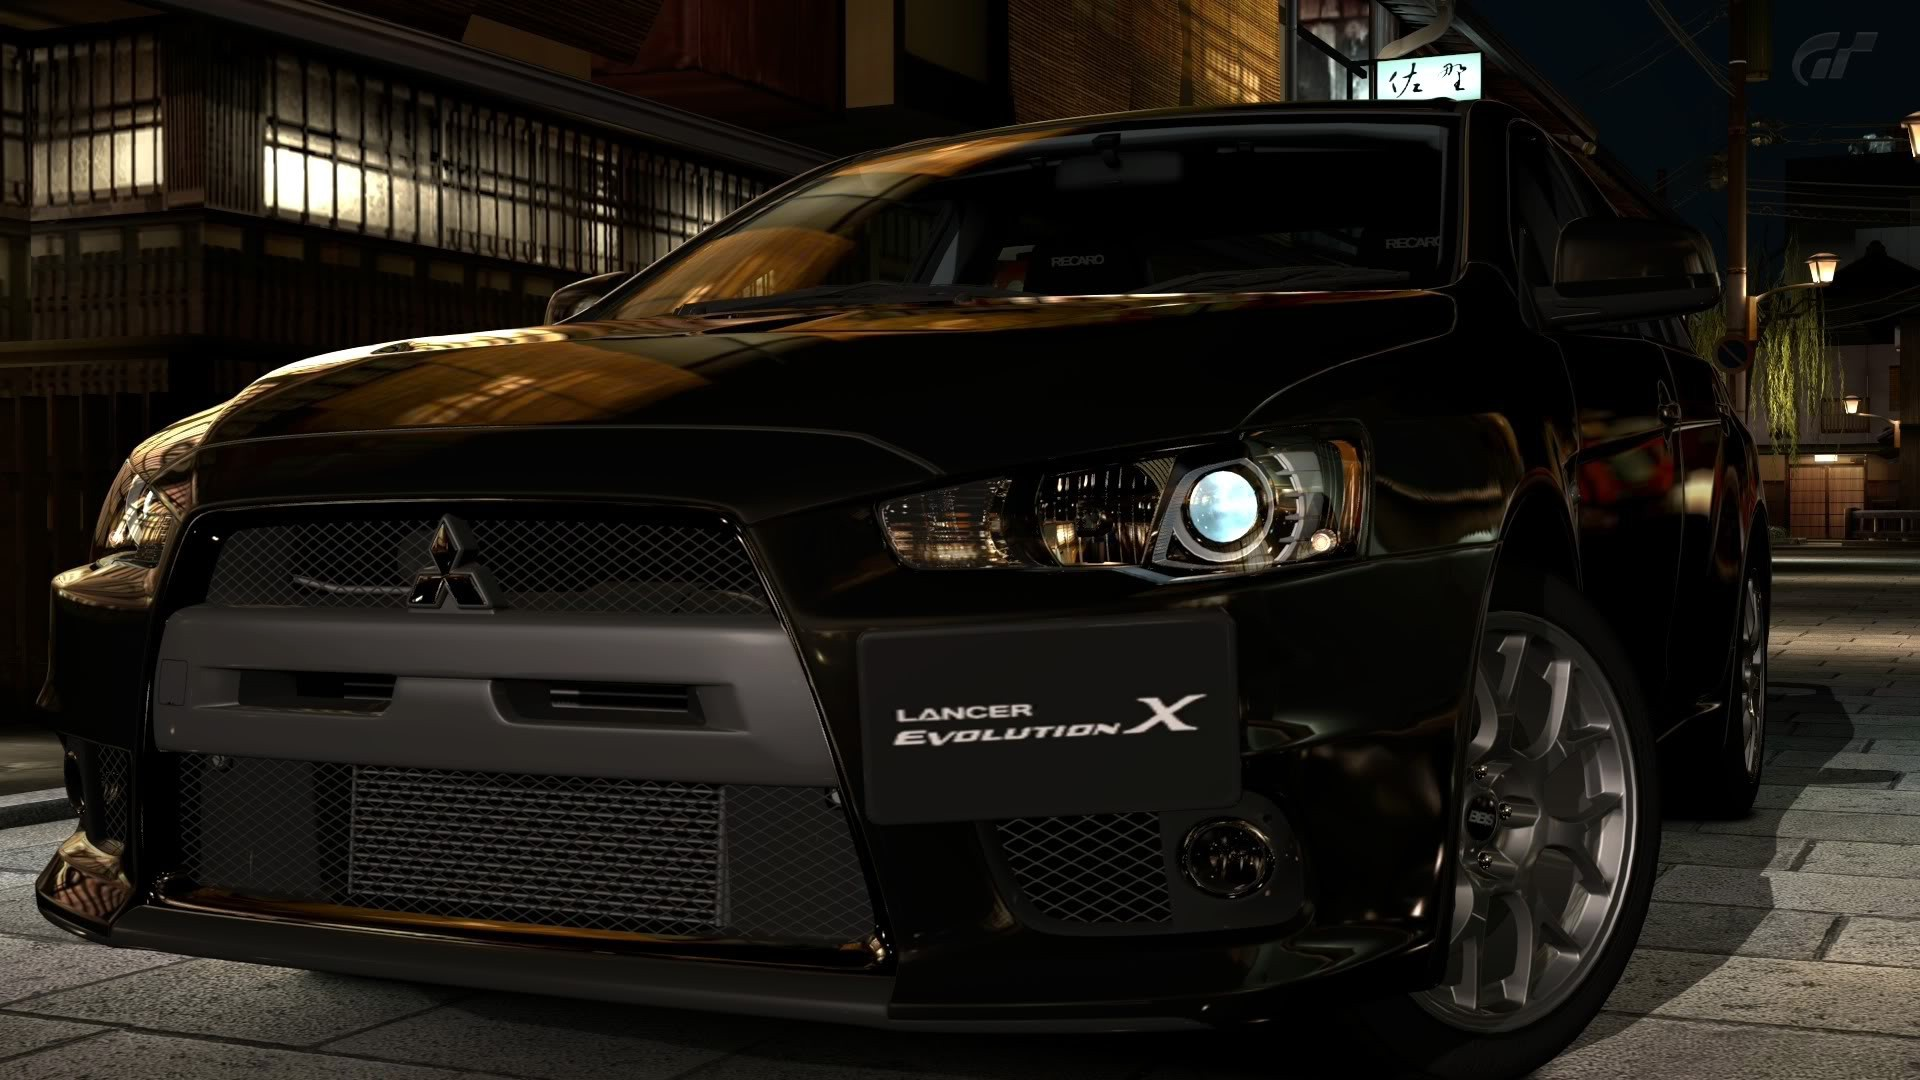 Mitsubishi Lancer Evolution X Tuning Front Green Fire  .